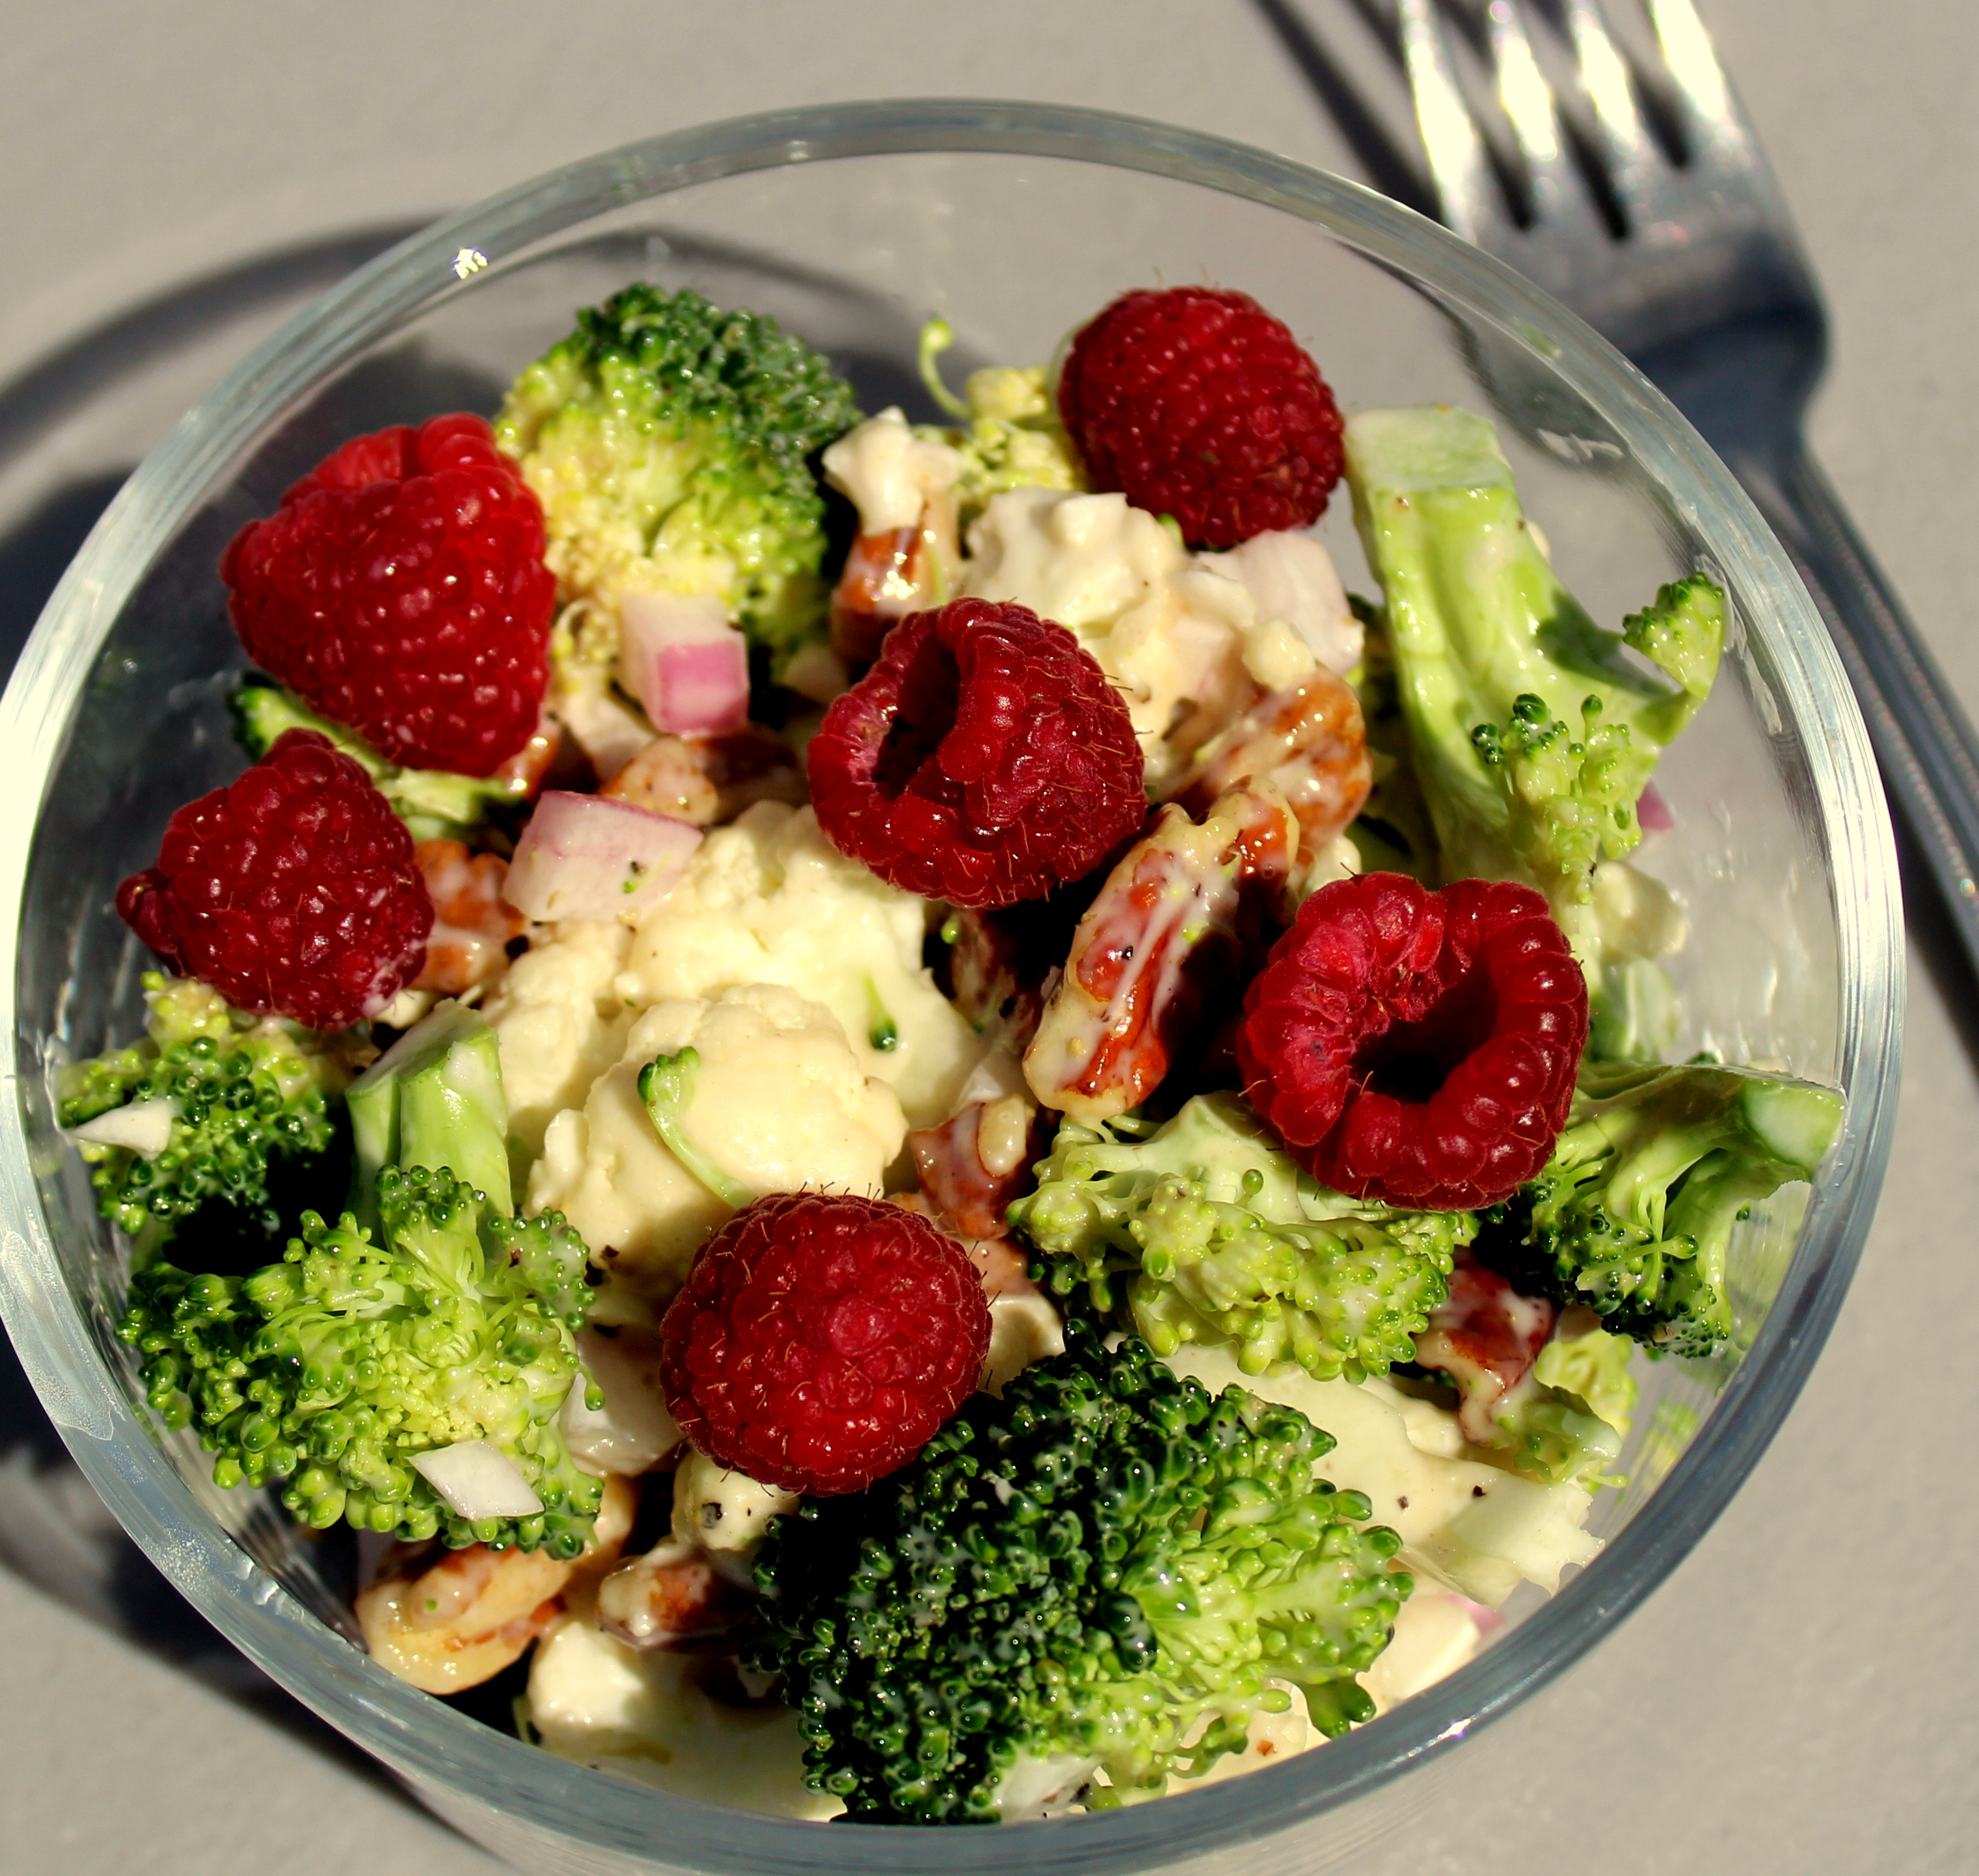 Raspberry Broccoli Salad